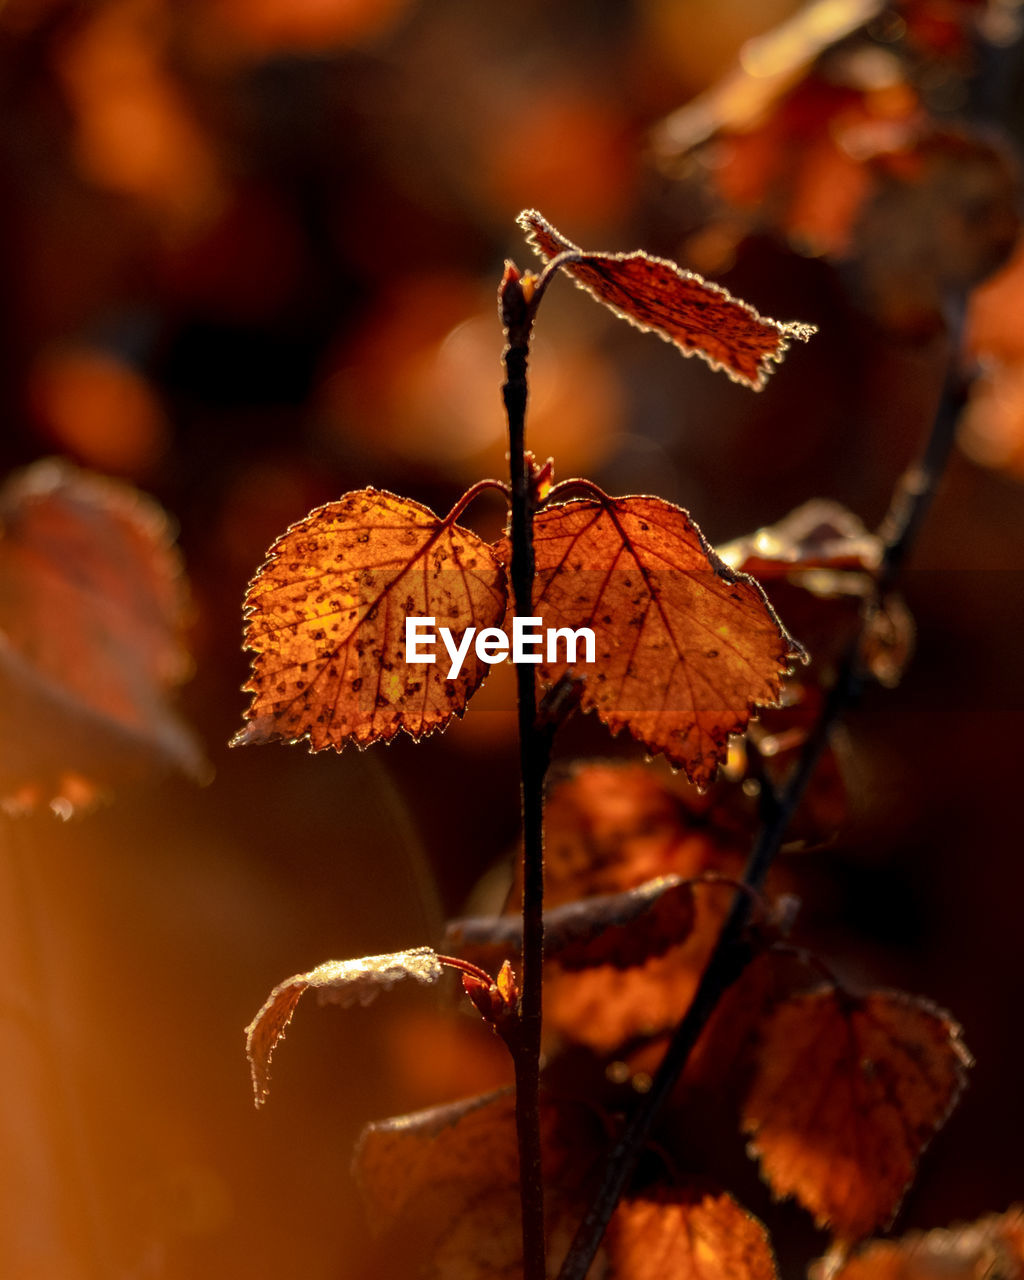 leaf, plant part, close-up, autumn, plant, change, focus on foreground, no people, nature, beauty in nature, dry, day, selective focus, vulnerability, leaves, fragility, outdoors, growth, orange color, brown, natural condition, dried